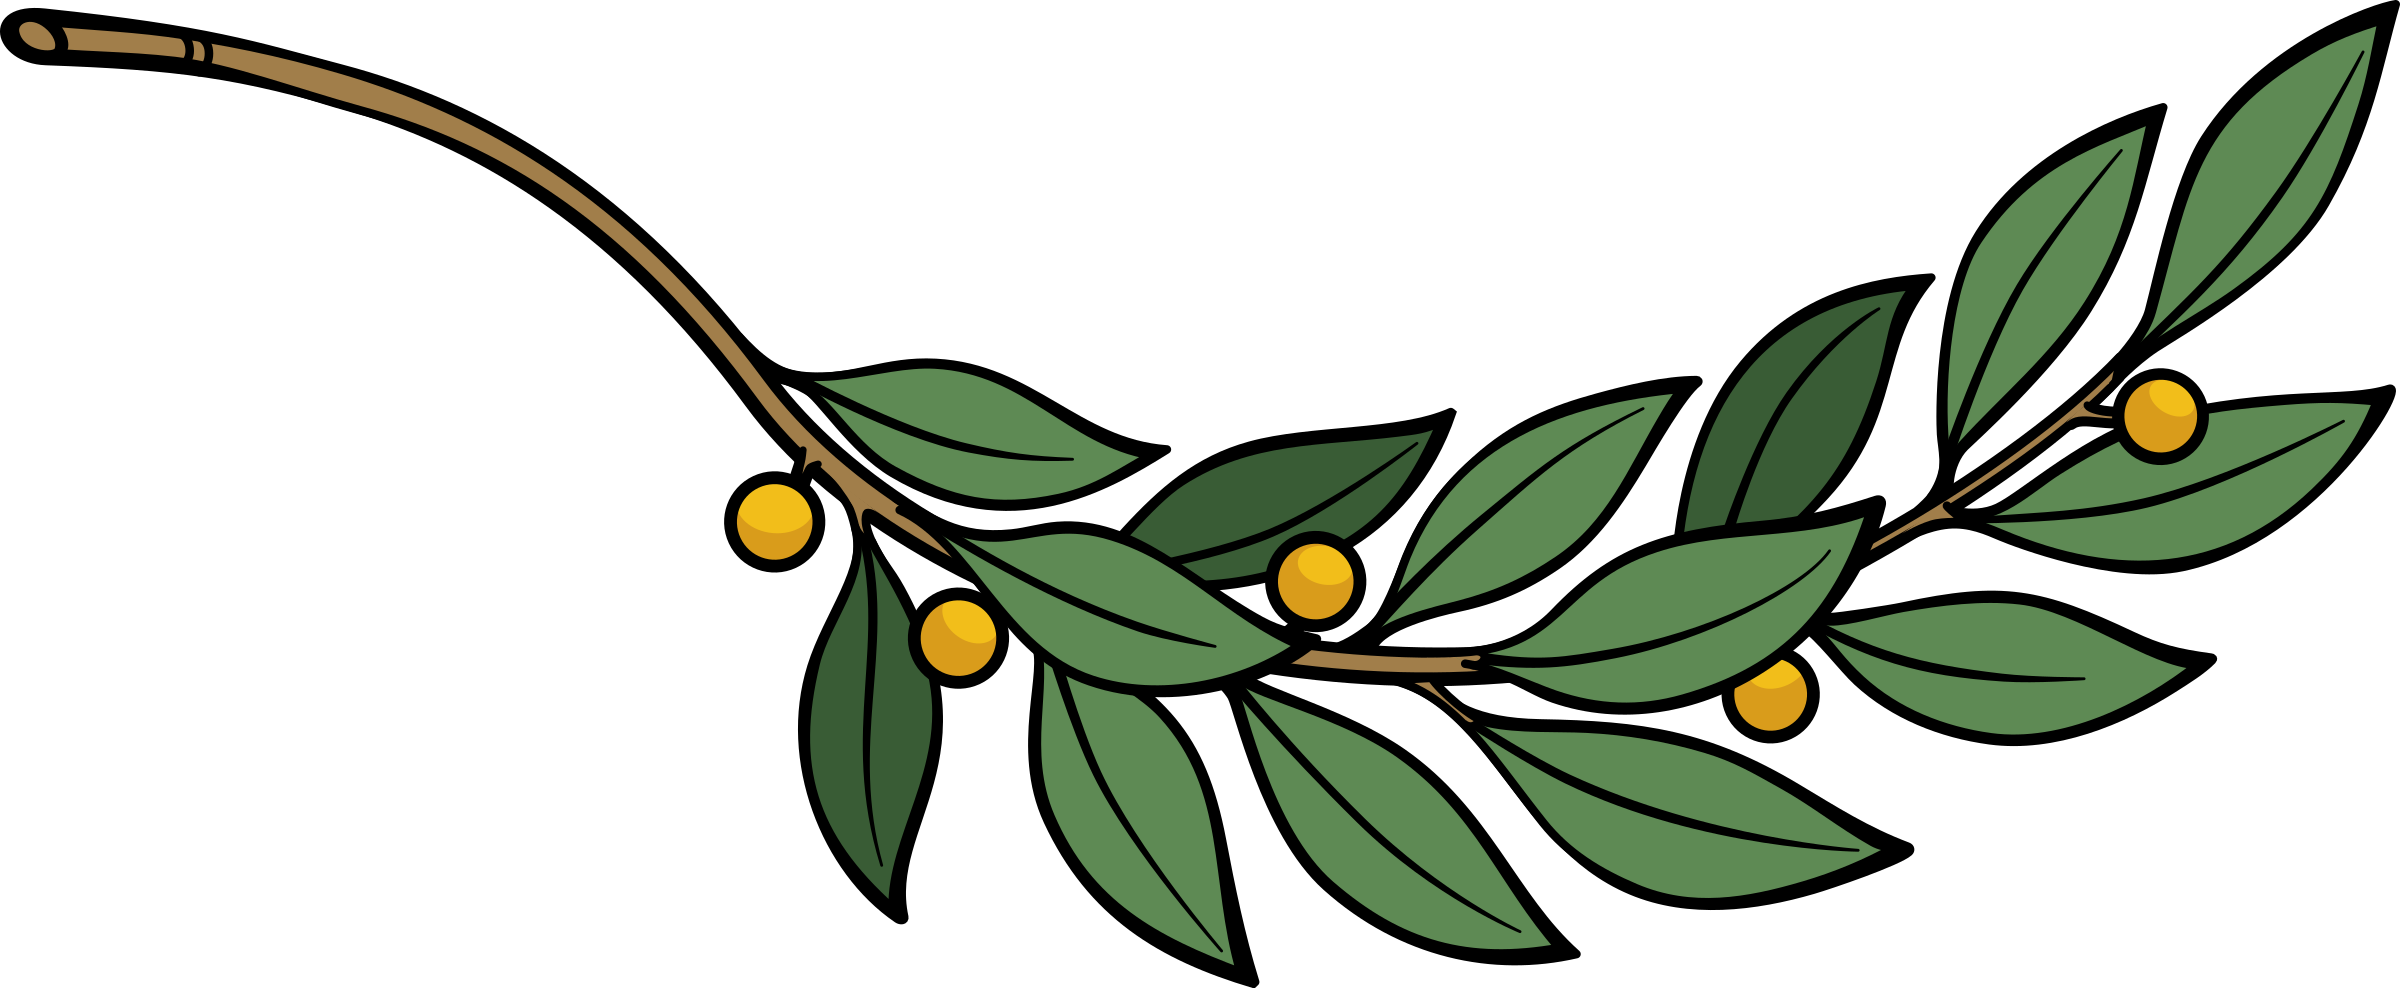 Branch icons png free. Laurel clipart green